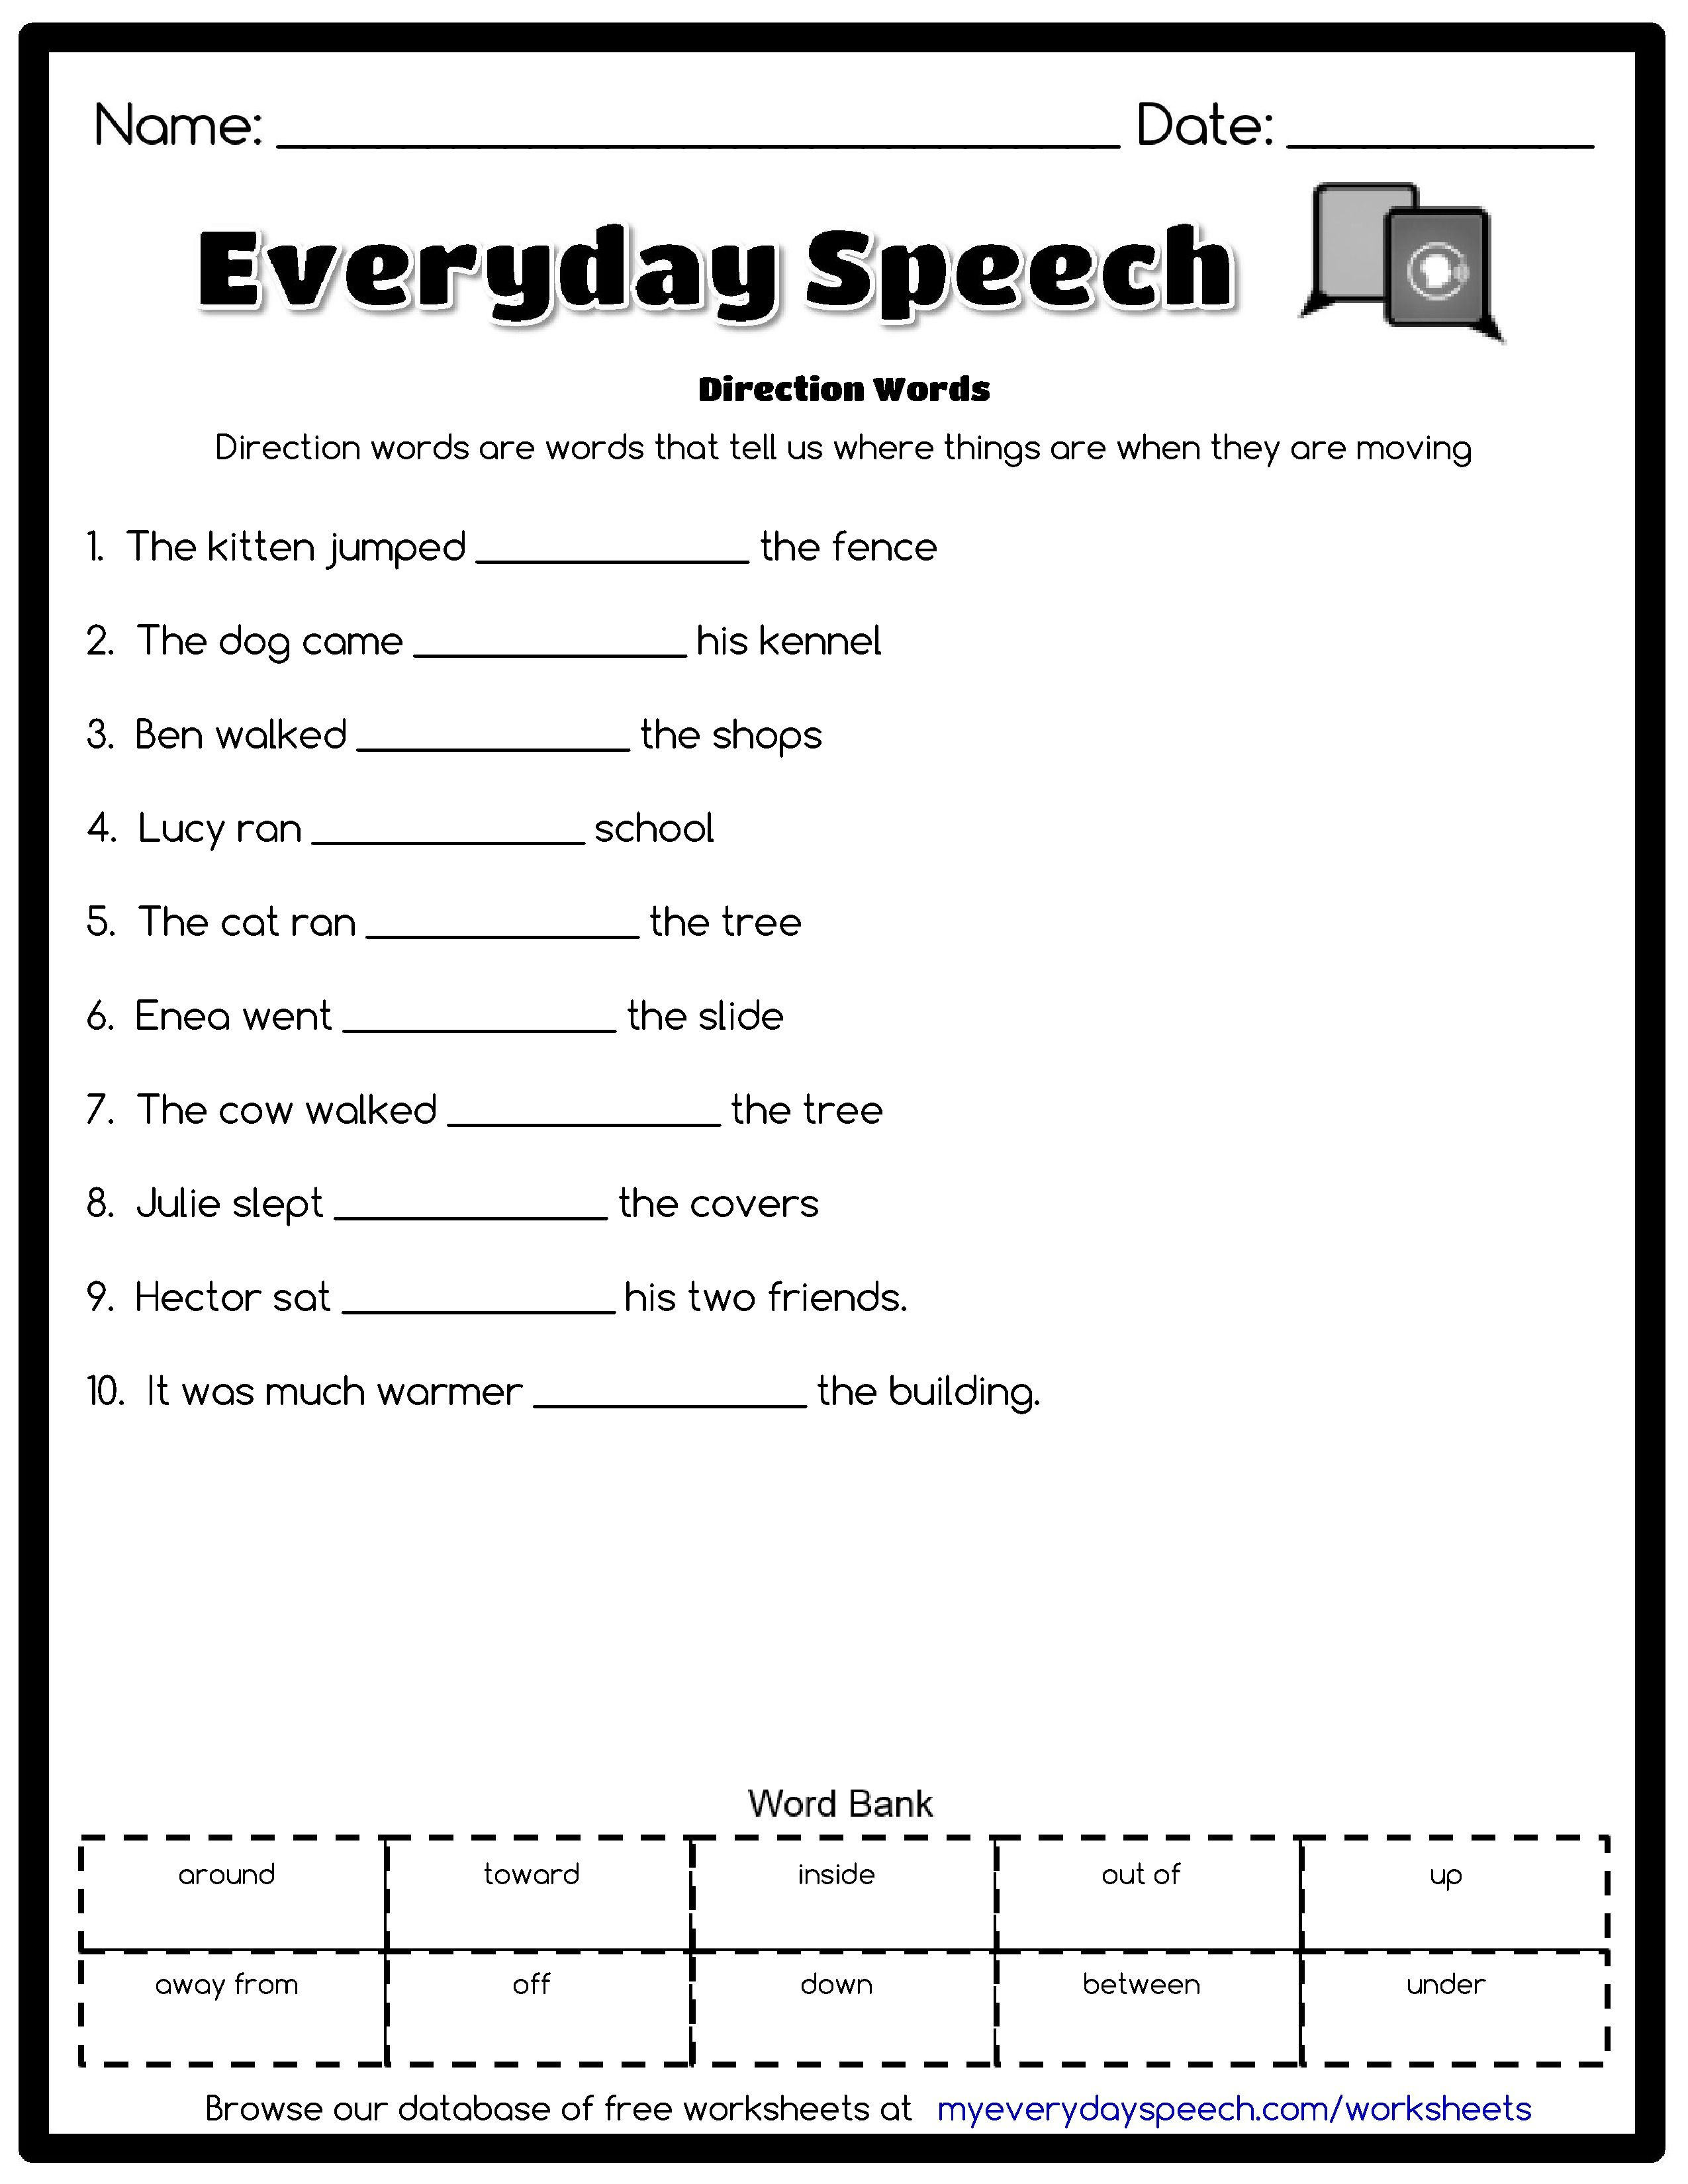 small resolution of Check out the worksheet I just made using Everyday Speech's worksheet  creator! Direction Words - Direction words are wor…   Speech therapy  worksheets